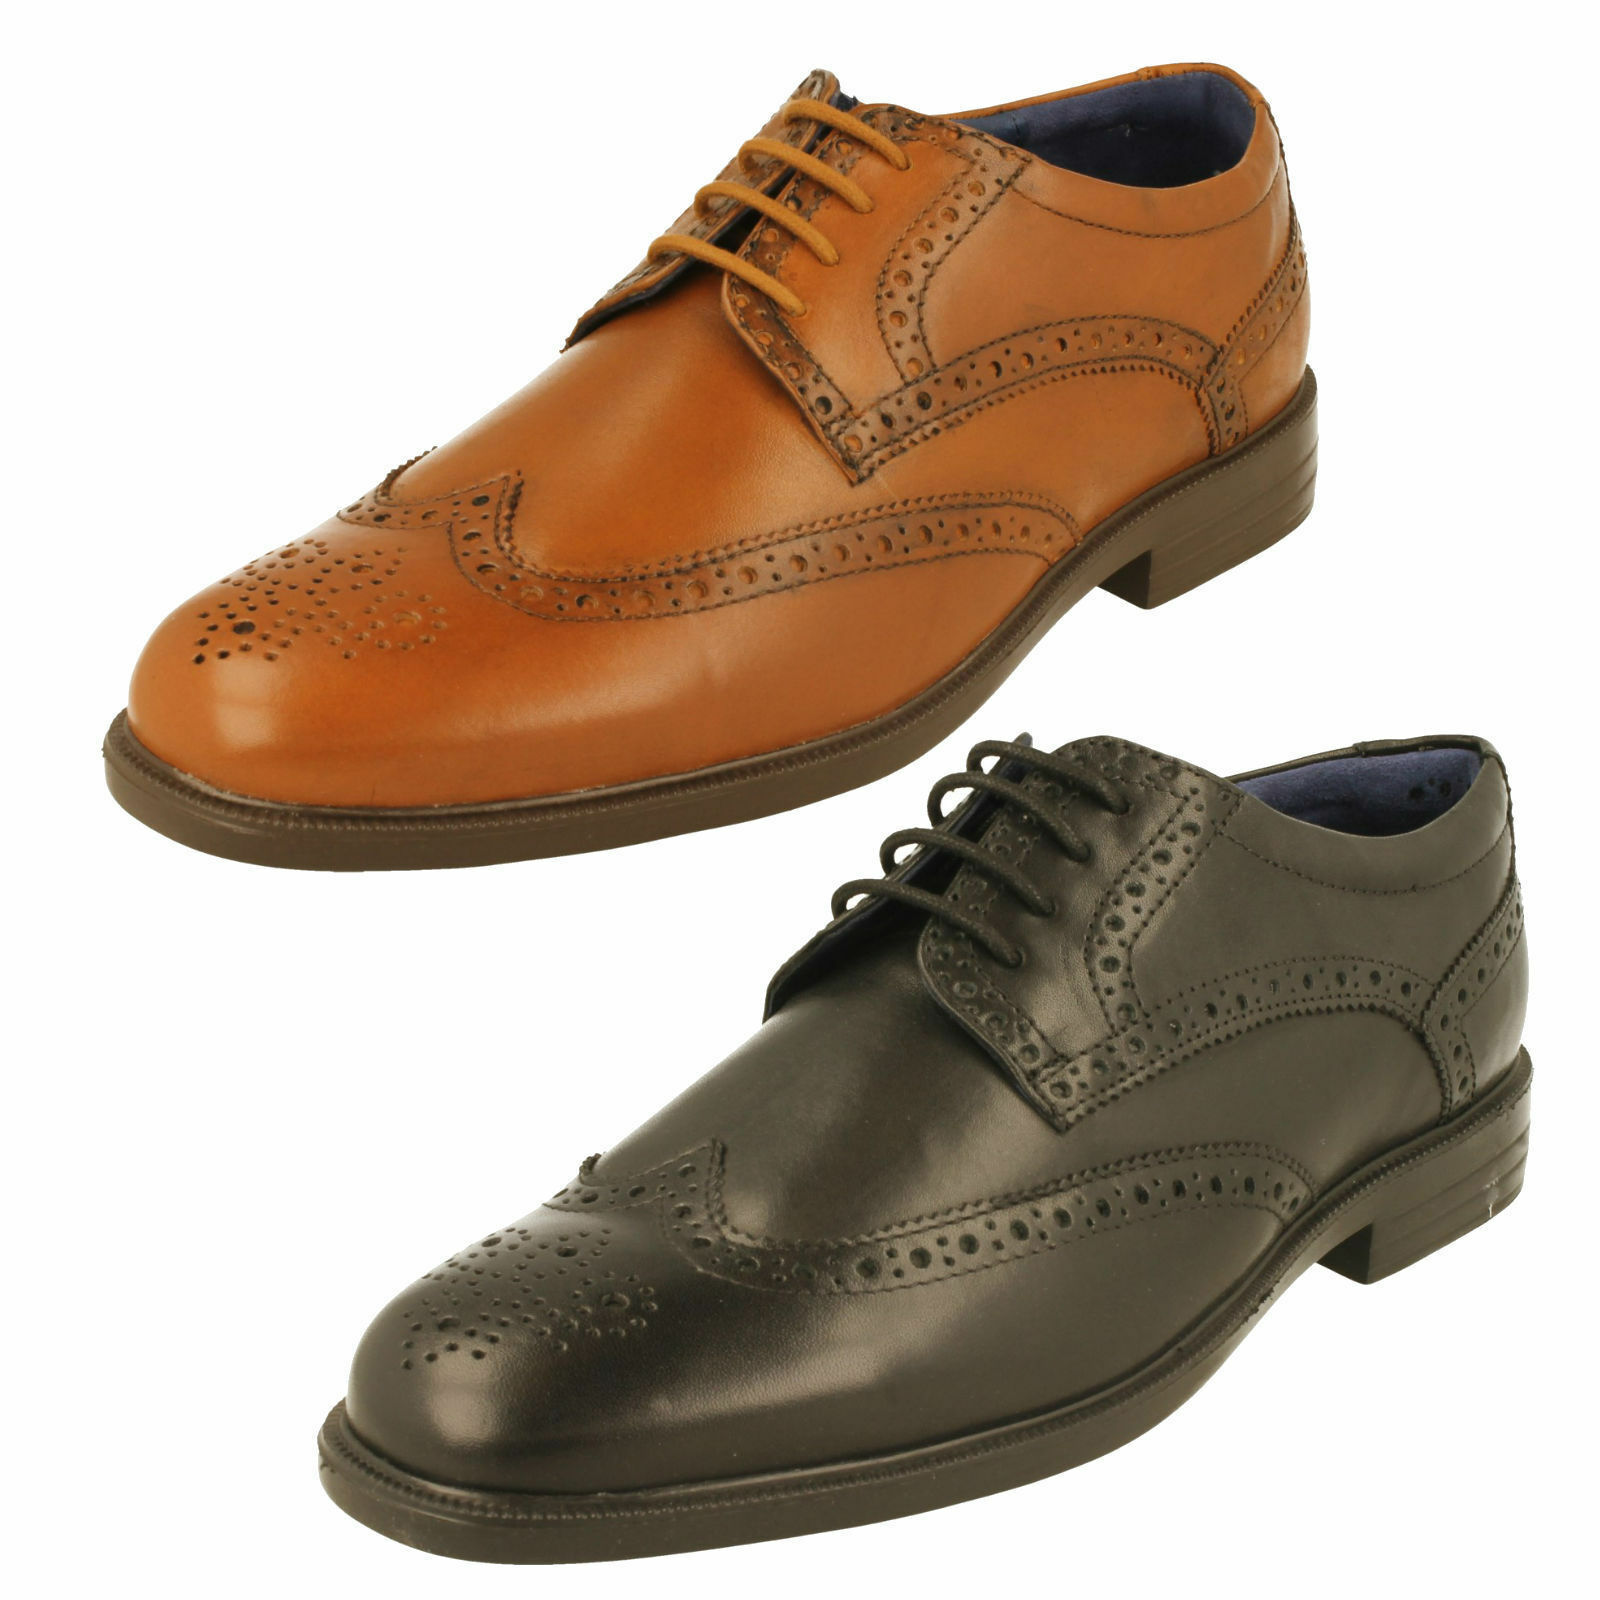 Mens Tan Leather Lace Up Brogue Padders Formal Shoes Berkeley